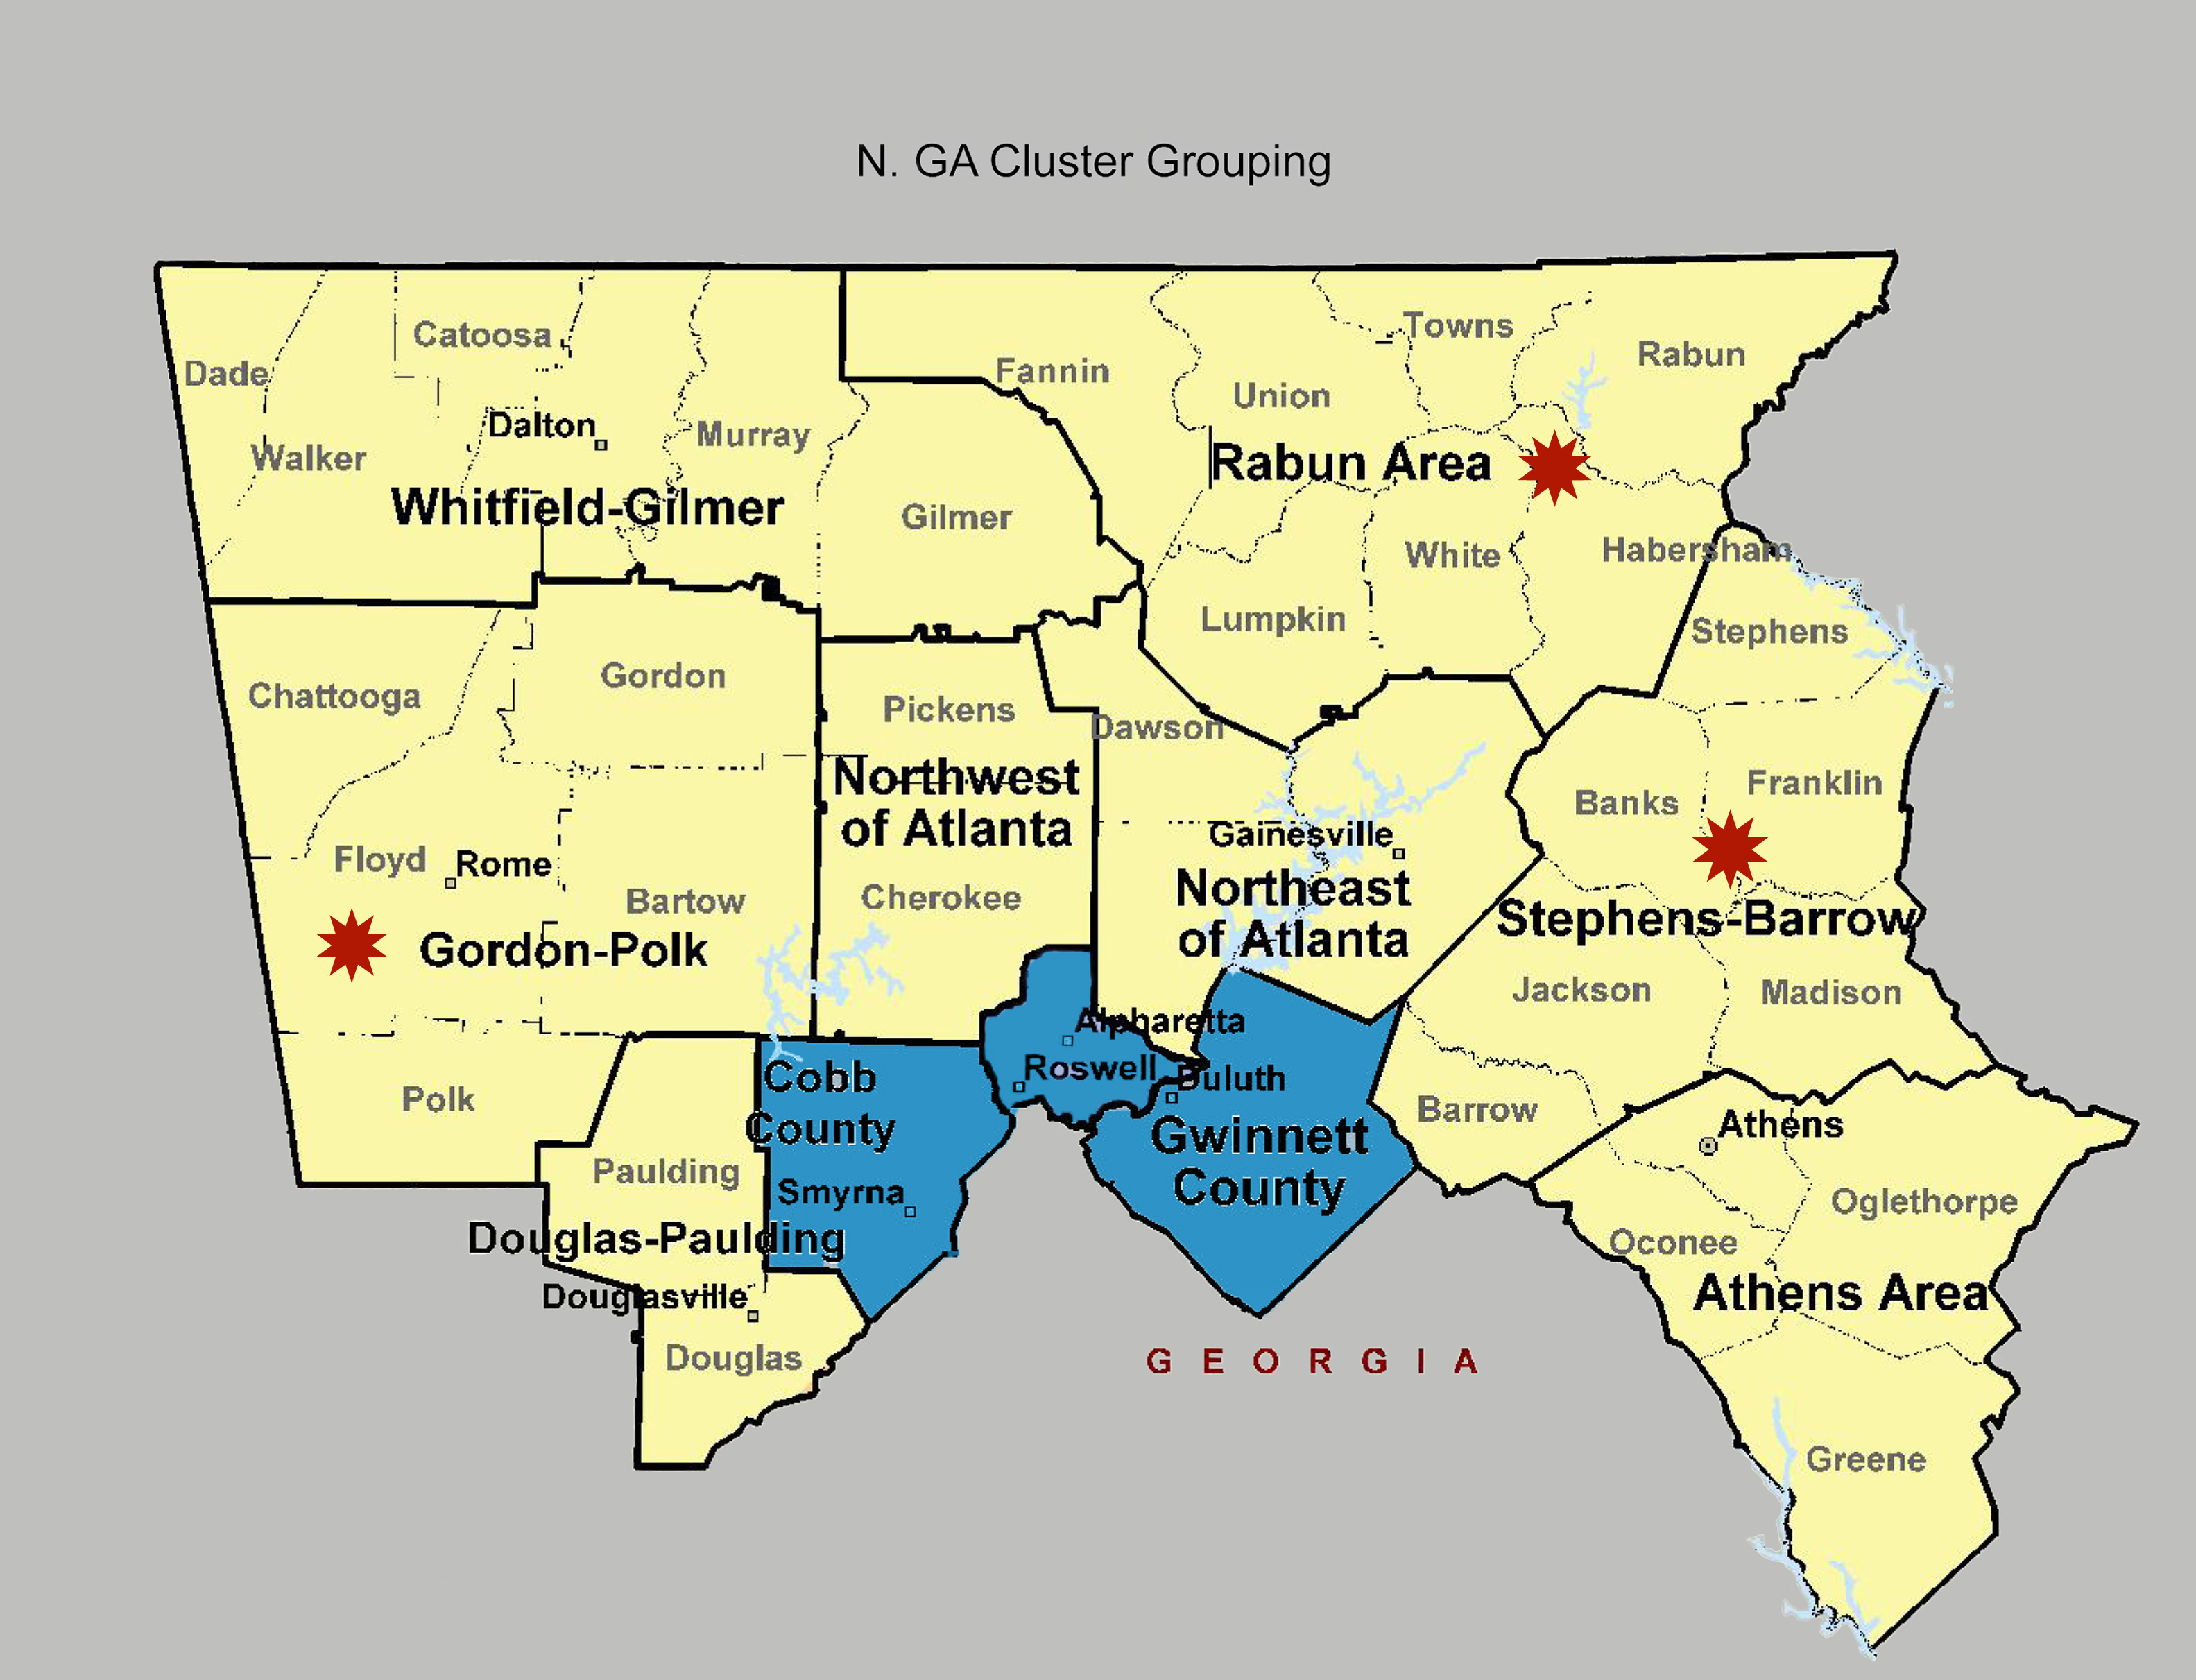 Critical Goal Clusters - Georgia Grouping | Regional Bahá'í ... on harris county, gilmer county, brasstown bald, cleveland map, historic south, warner robins, douglas county, franklin county, stephens county, armstrong atlantic map, new mexico map, southern rivers, arkansas map, south carolina map, union map, madison county, gwinnett county, putnam county, cumberland plateau map, acworth map, houston map, rio grande map, jefferson county, inland empire, dekalb county, delaware map, atlanta metropolitan area, missouri map, blue ridge mountains,